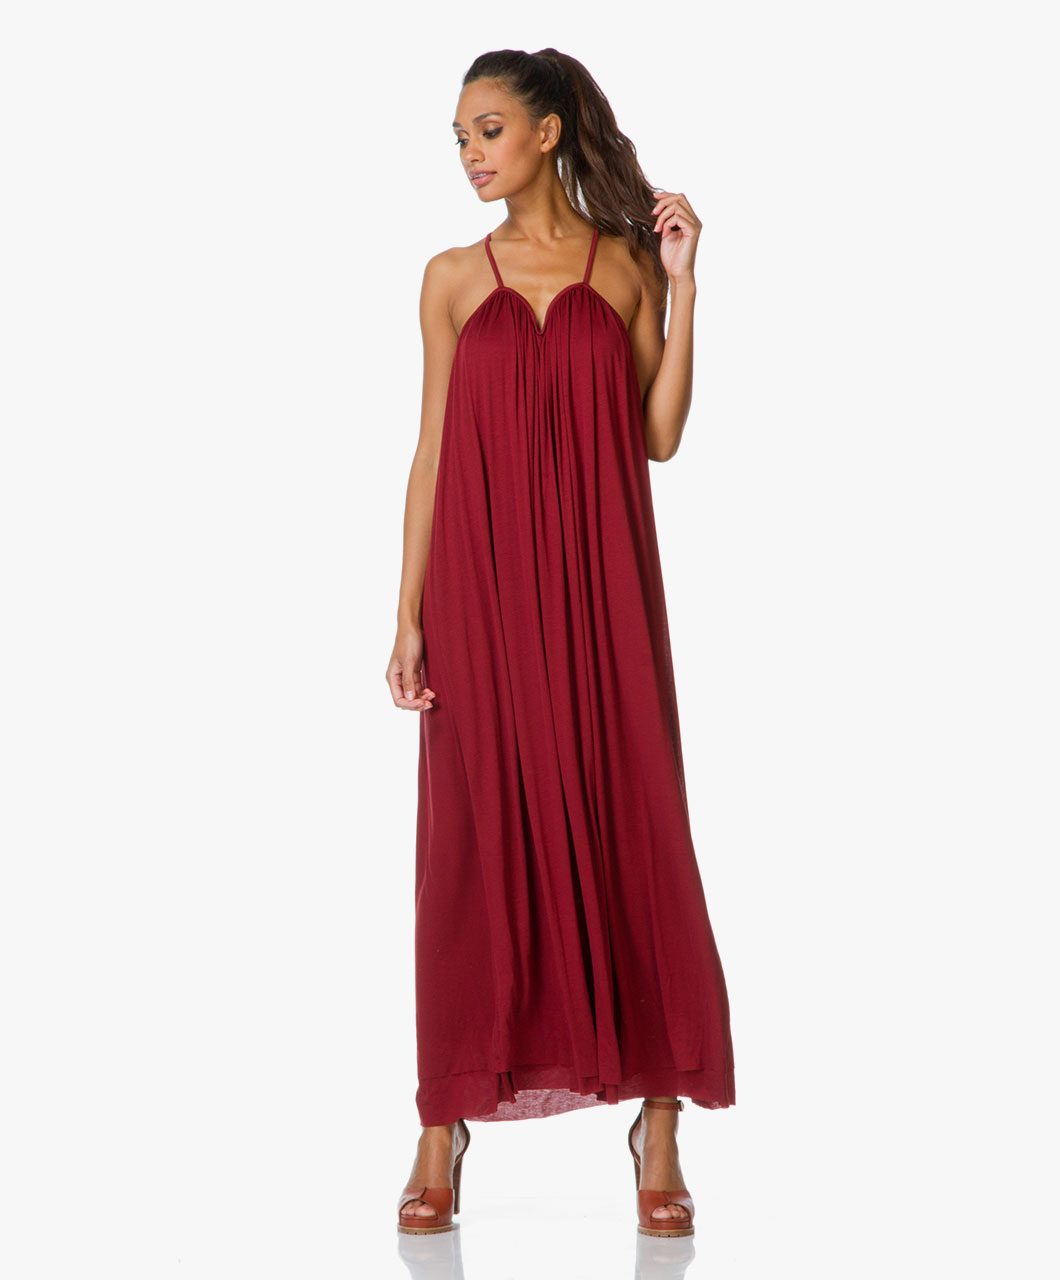 Filippa k red dress halter